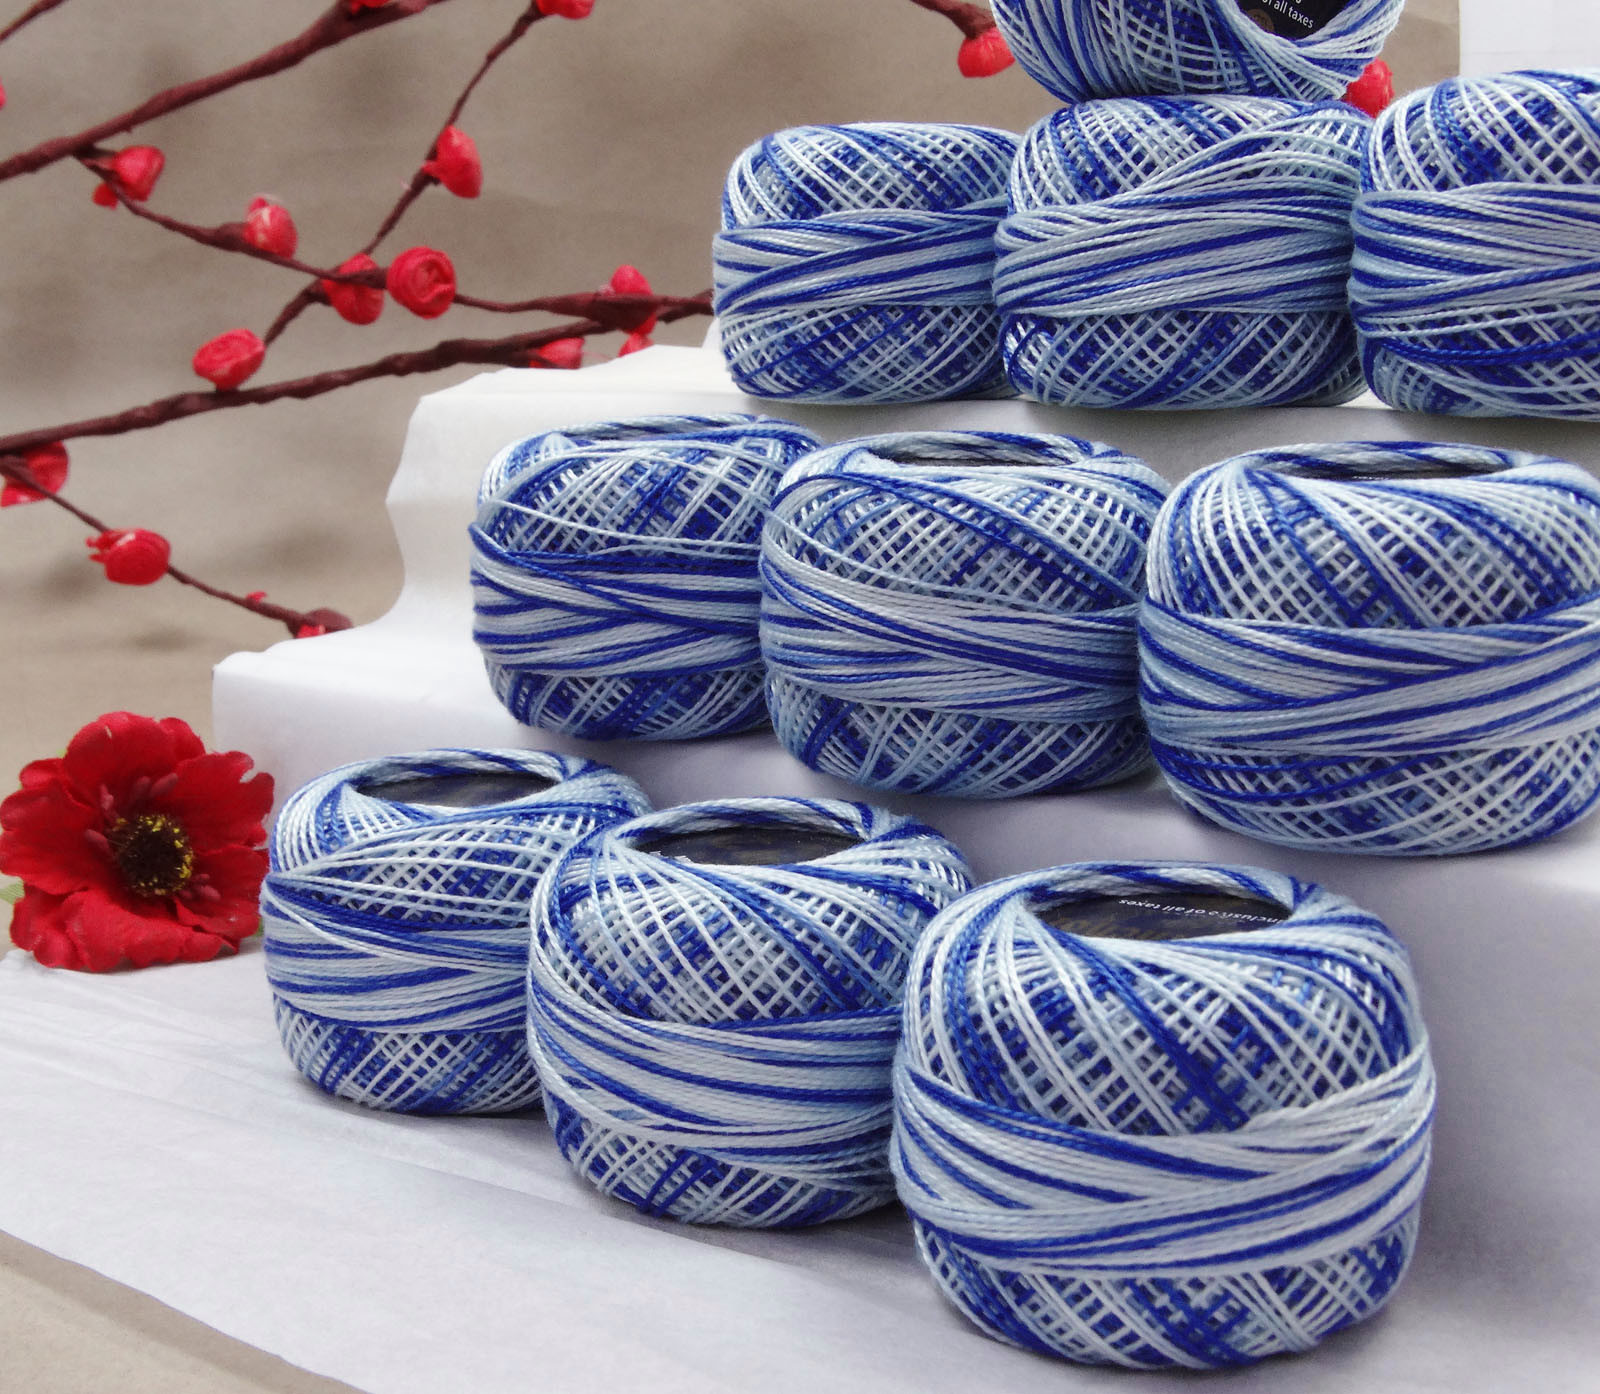 Best Of Anchor Crochet Cotton Variegated Yarn Embroidery Knitting Cotton Crochet Yarns Of Lovely 45 Models Cotton Crochet Yarns